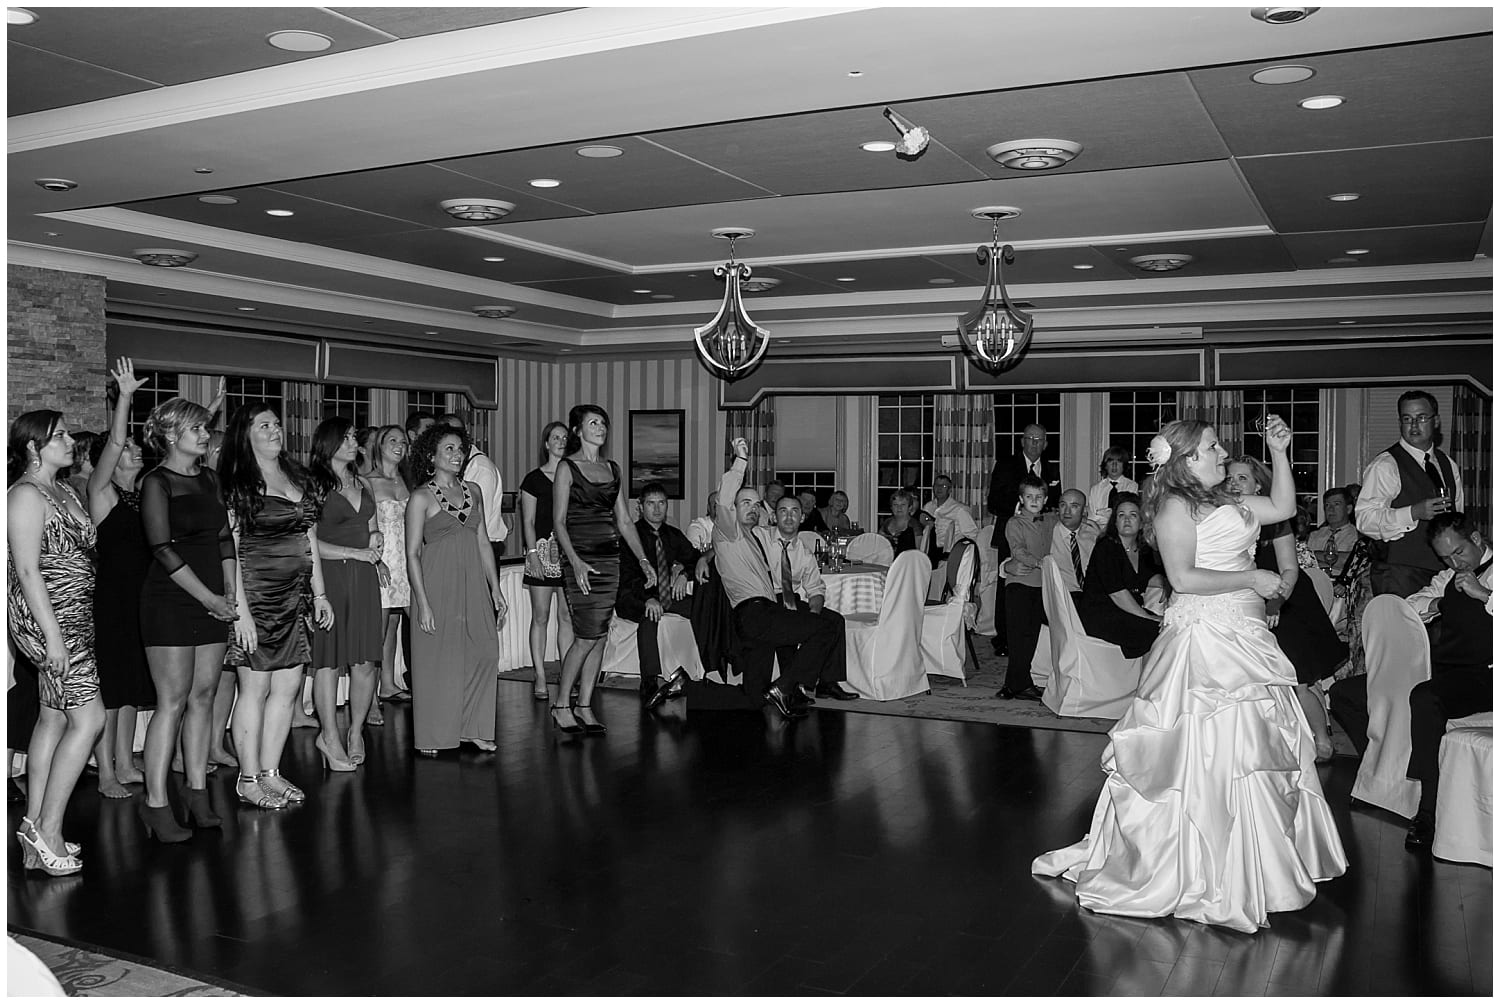 The bride tosses her bridal bouquet during her wedding reception at the Ashburn Golf Club in Halifax Nova Scotia.